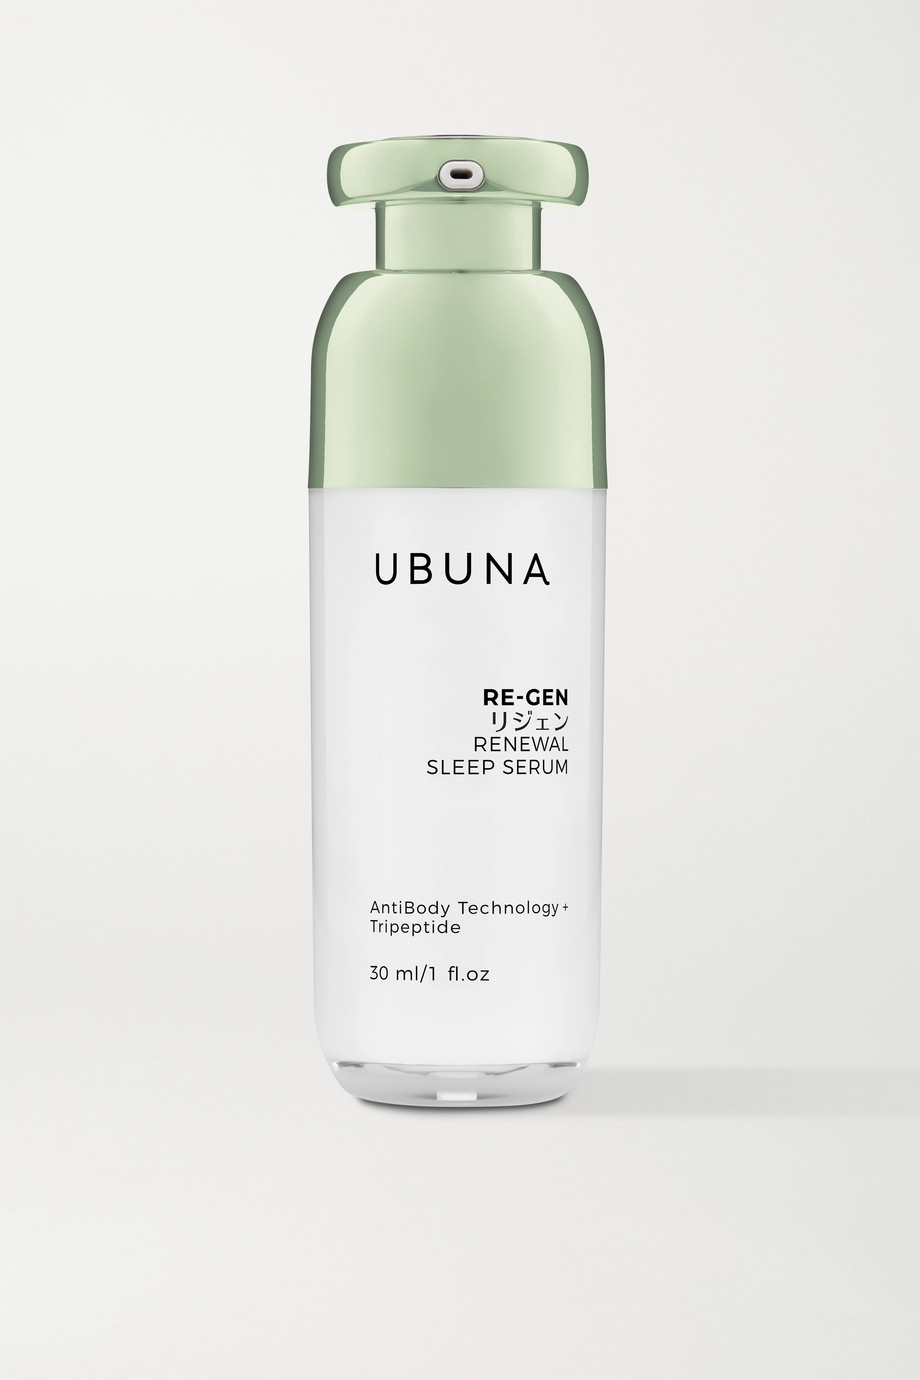 UBUNA BEAUTY Re-Gen Renewal Sleep Serum, 30ml